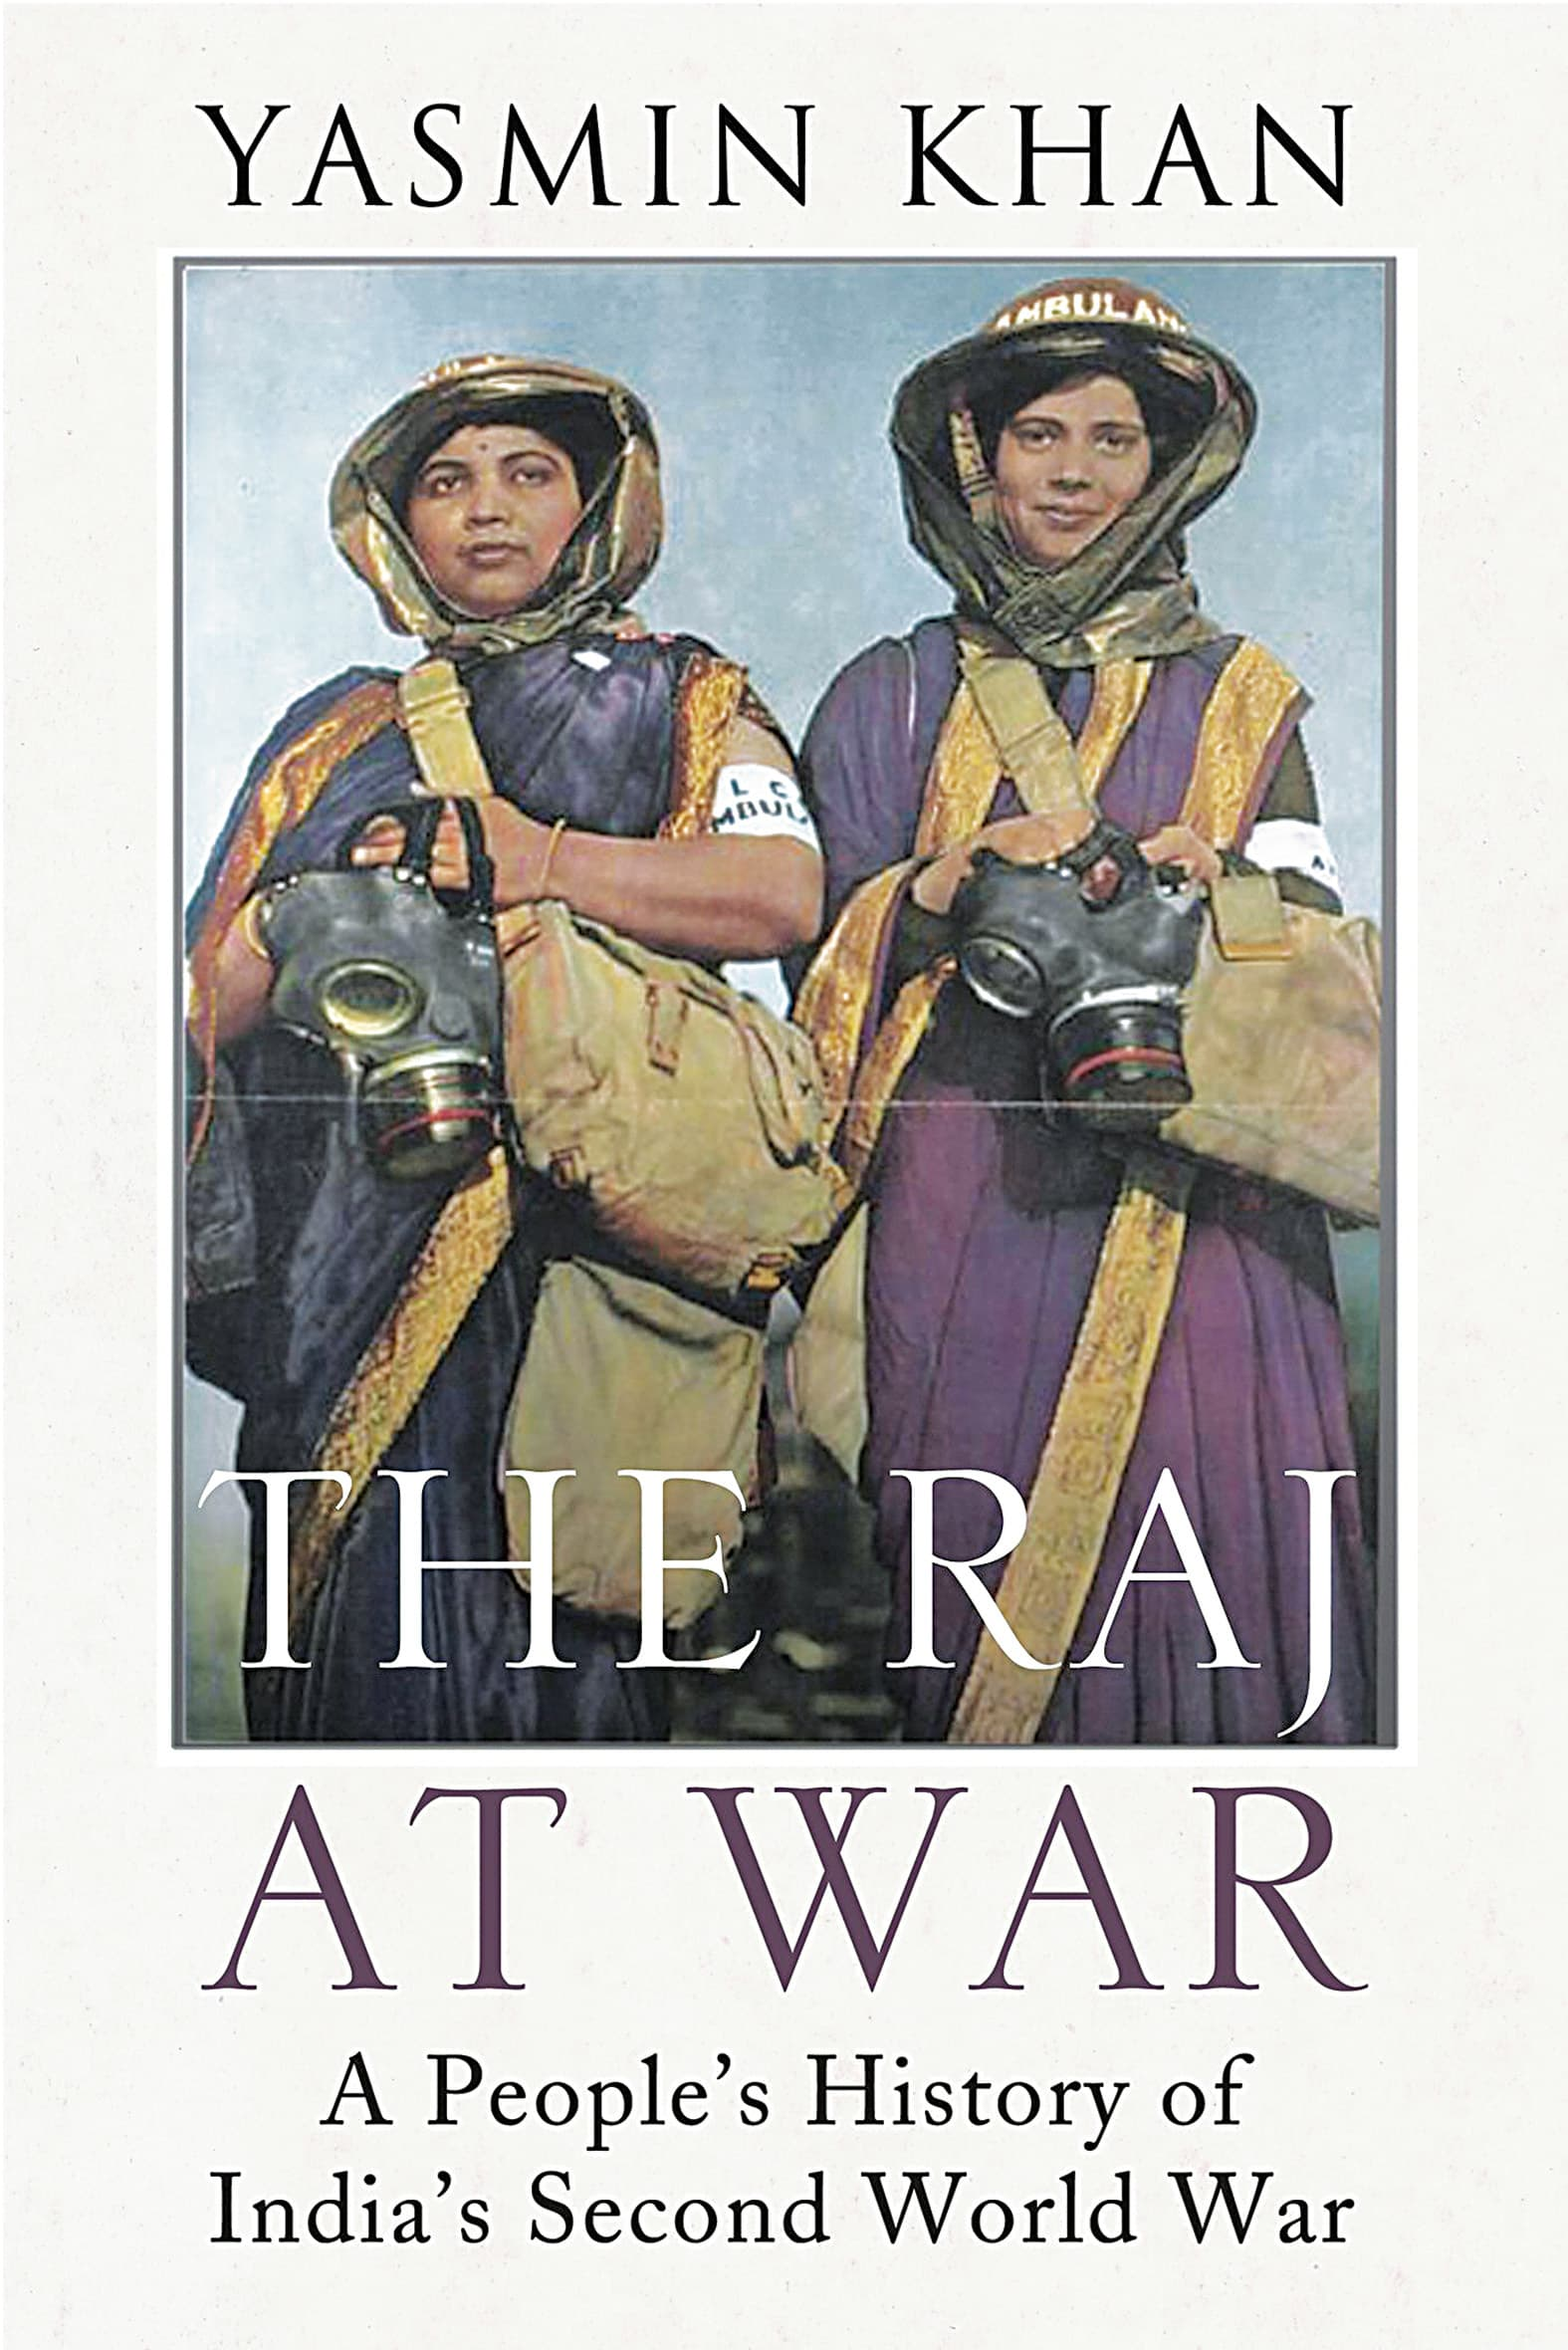 The Raj at War: A People's History of India's Second World War   (HISTORY)  By Yasmin Khan